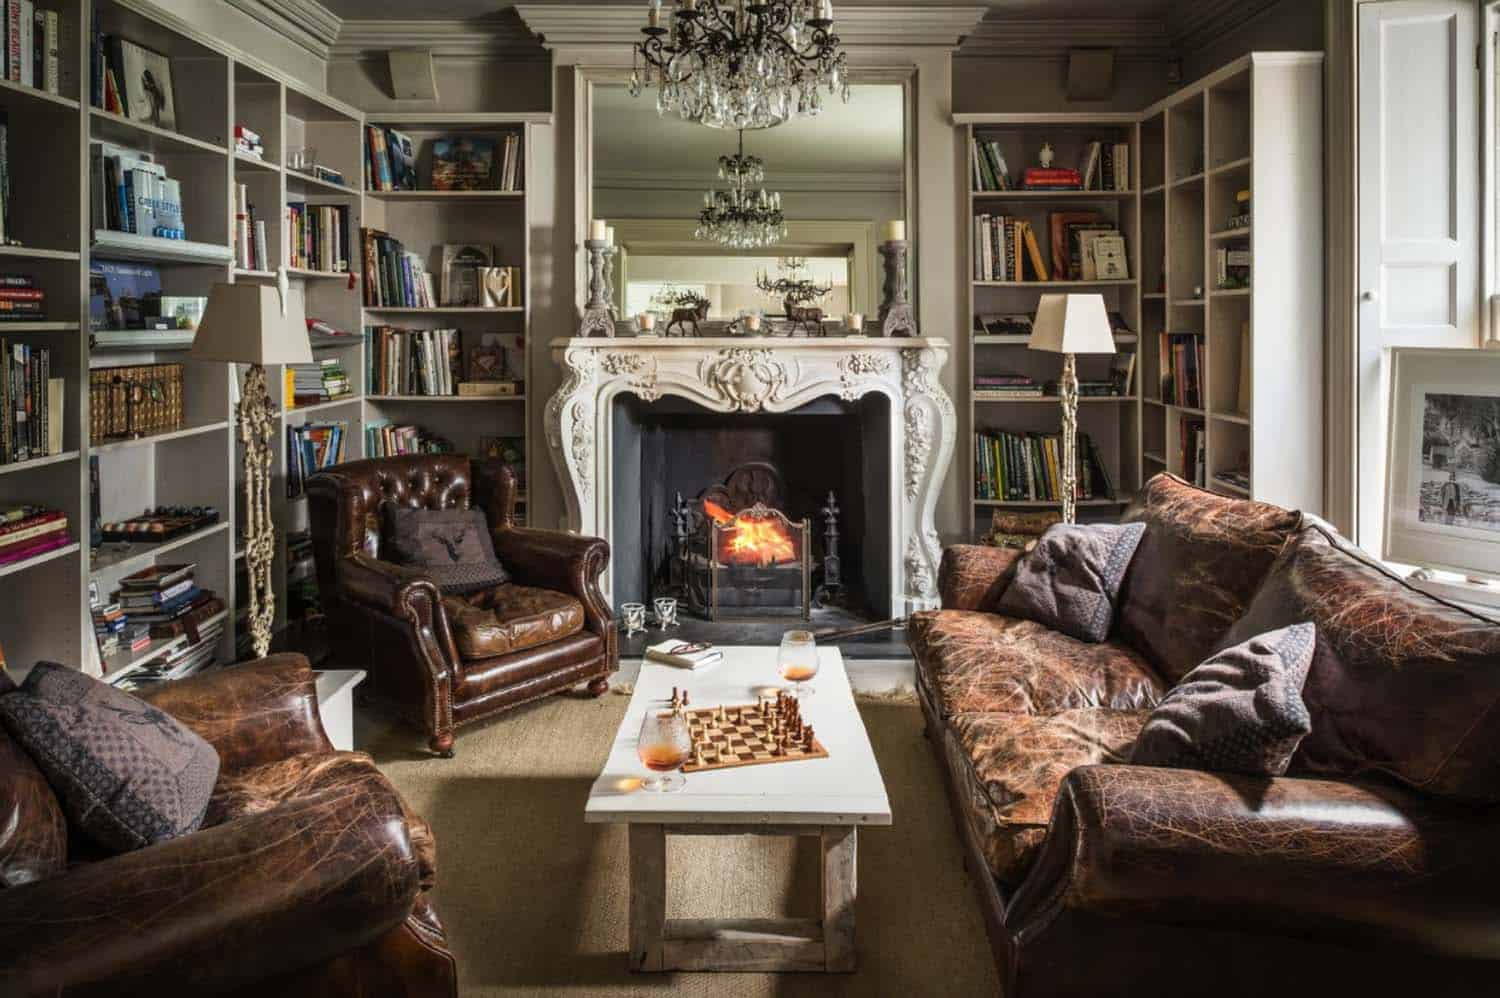 luxury-private-homestay-winterfell-cumbria-03-1-kindesign